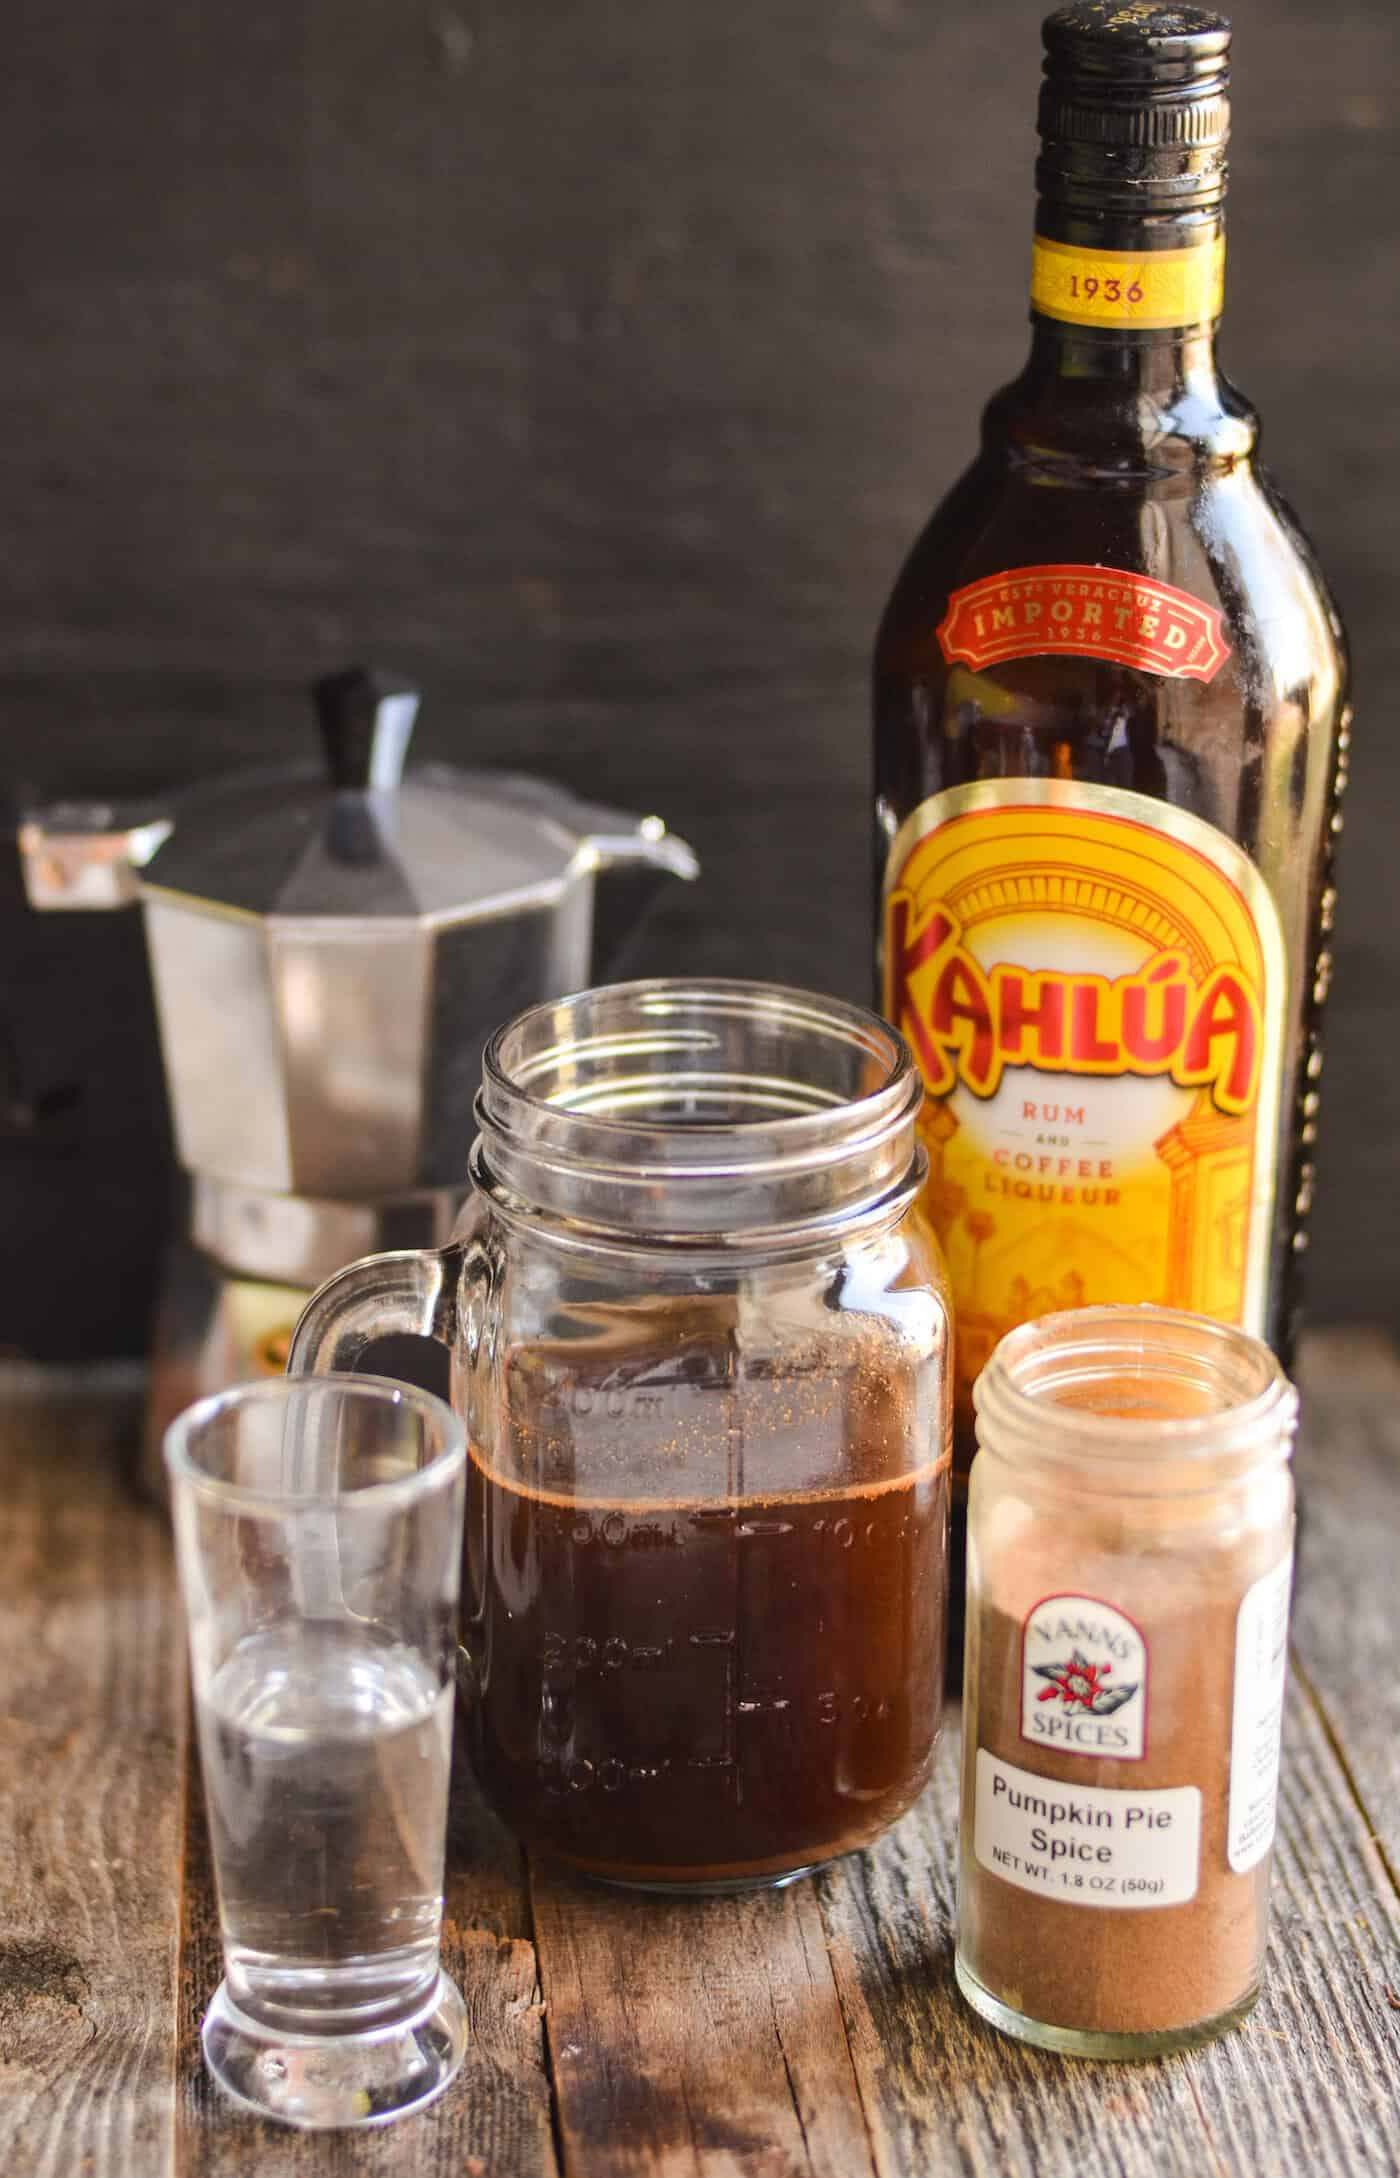 If you love drinks with Kahlua that are perfect for fall, this pumpkin pie spice cocktail is for you! Don't forget to add the whipped cream.